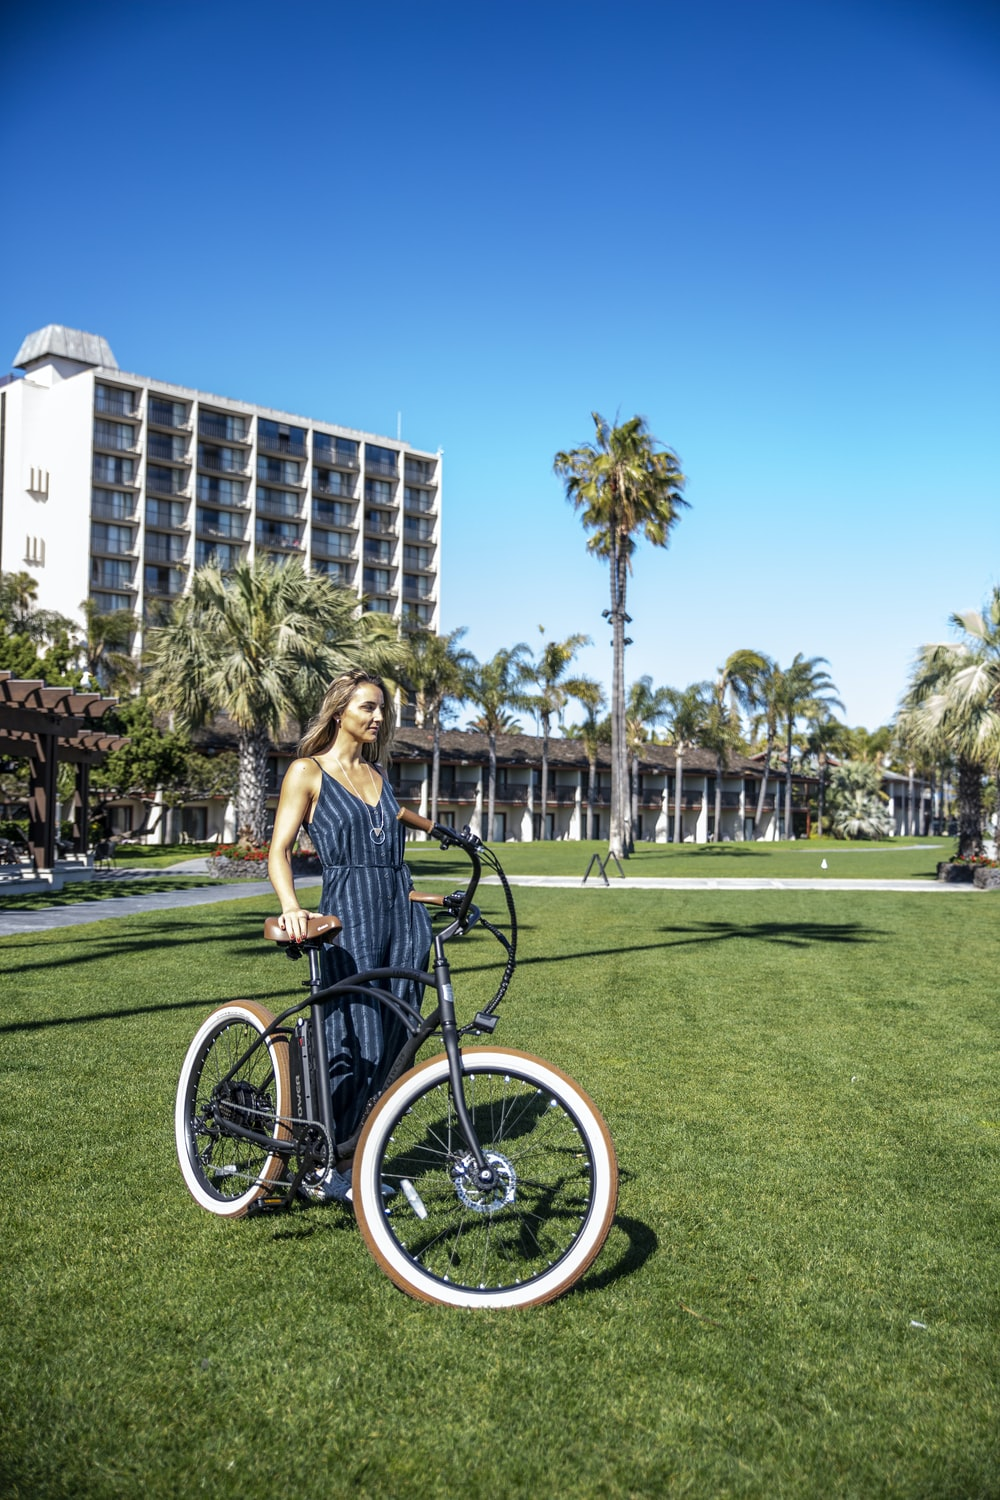 woman standing near bicycle on grass field